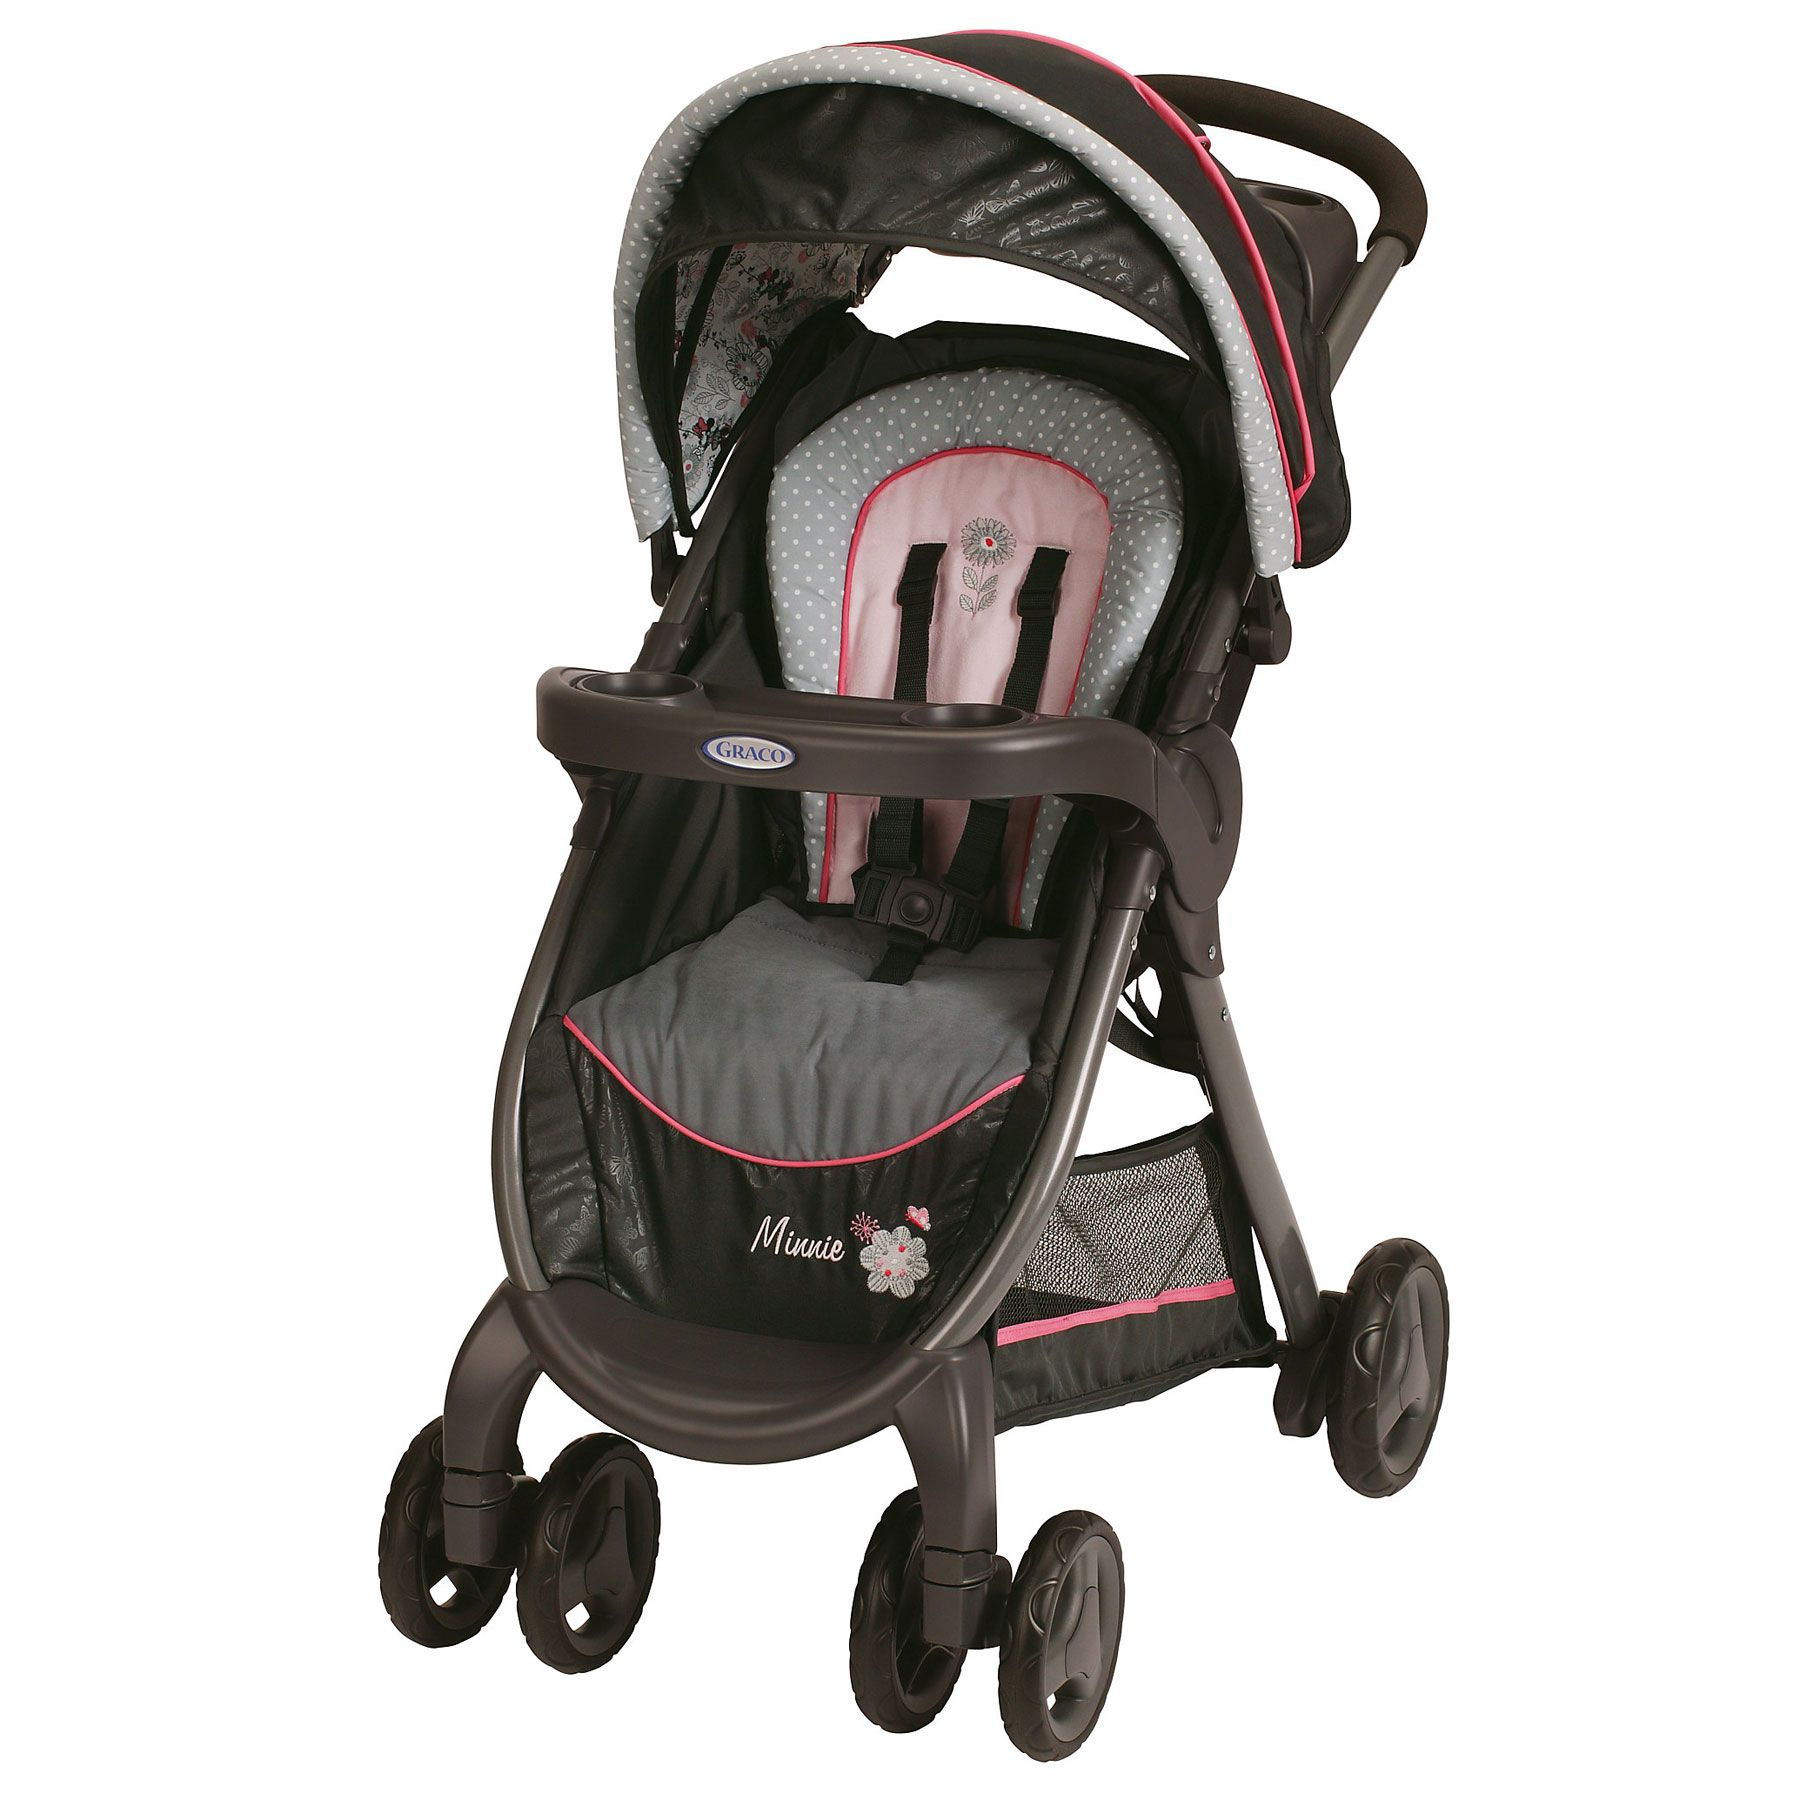 Minnie s Garden Premier FastAction™ Fold Connect™ Stroller from Graco